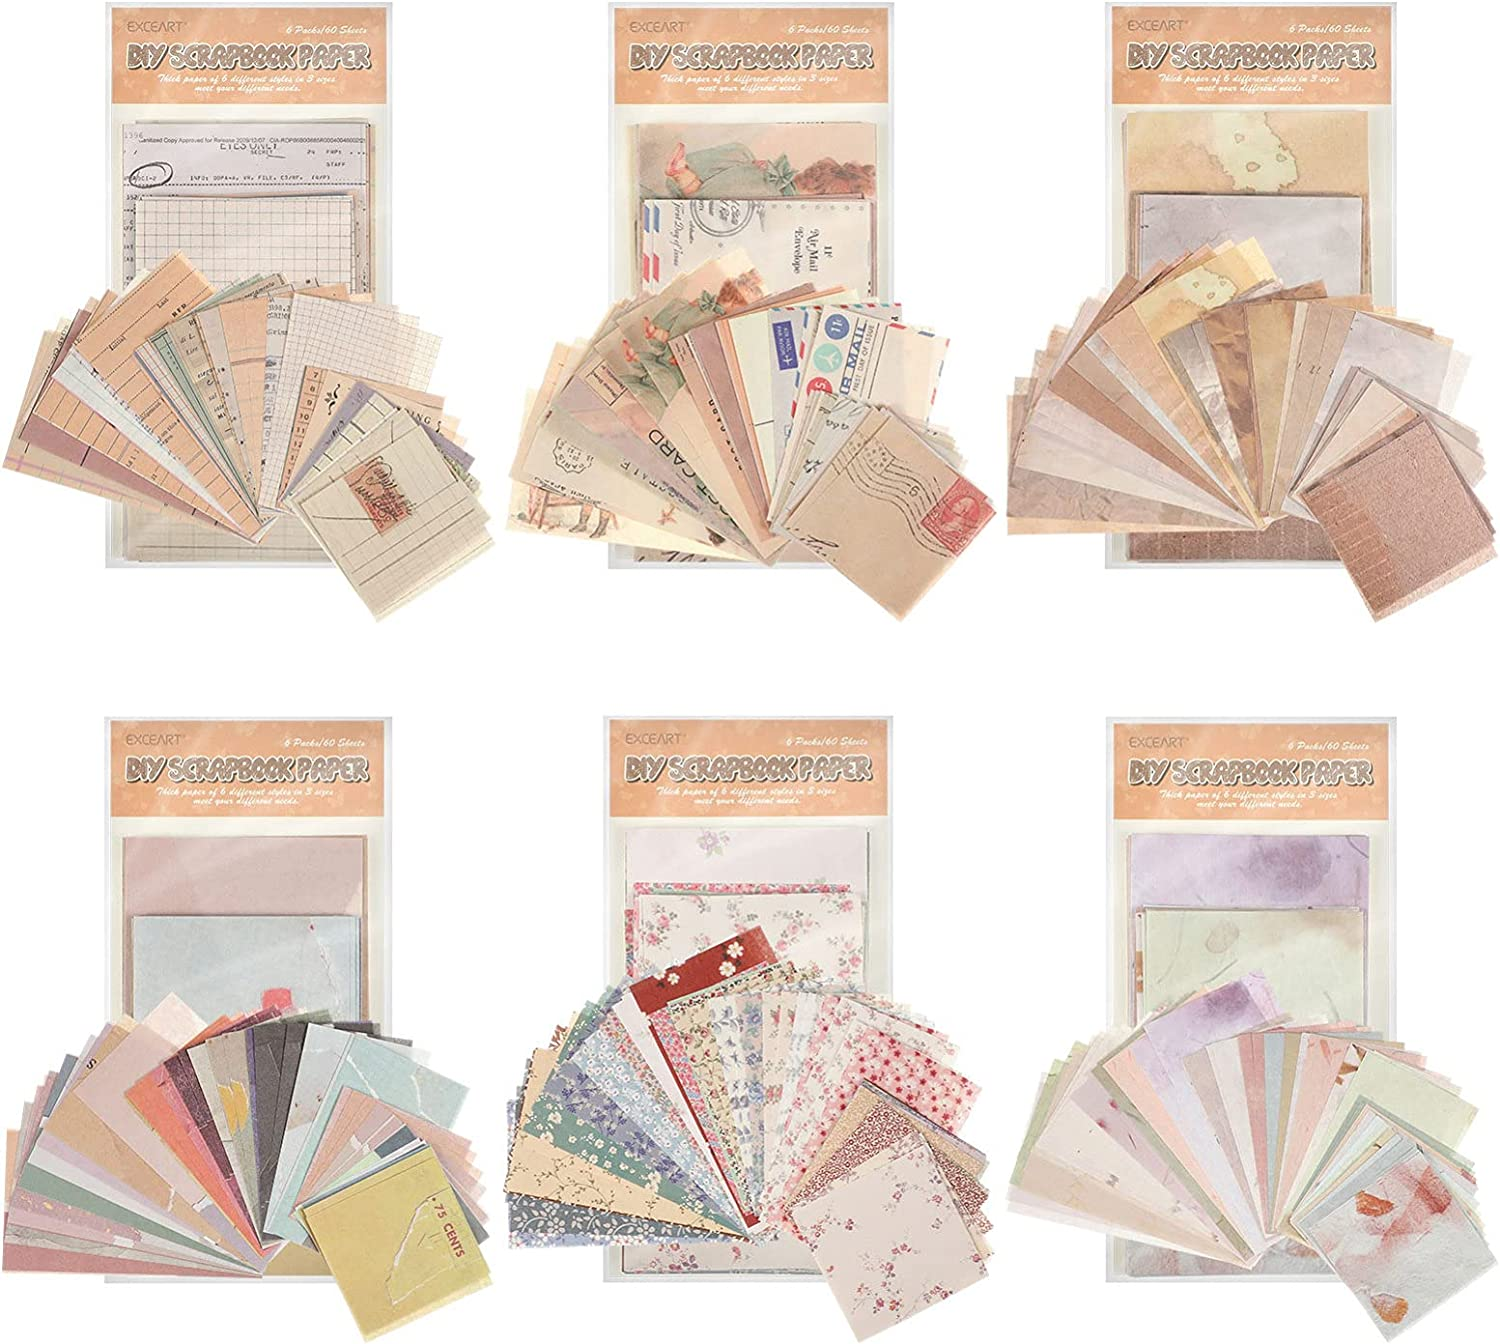 EXCEART 60 Sheets Vintage Supplies Journaling Animer Omaha Mall and price revision Scrapbooking Paper